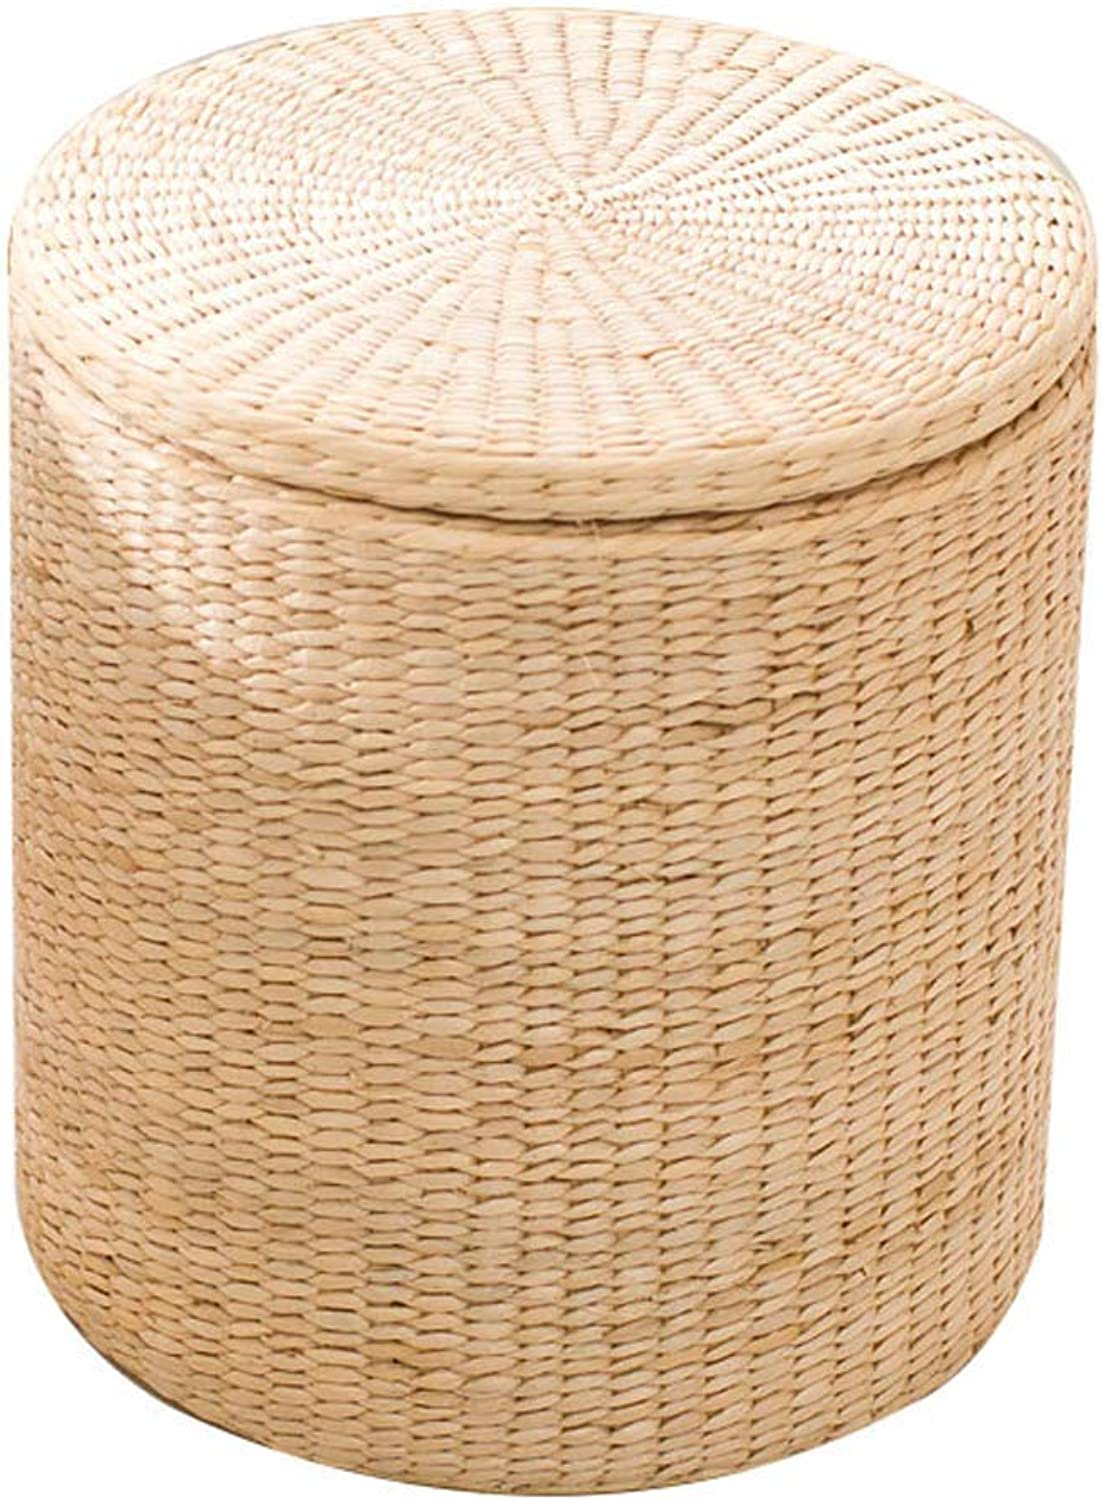 Round Storage Stool Creative Rattan Stool, Home Straw Dining Stool Solid Wood Dressing Stool, Suitable for Living Room, Bedroom, Entrance